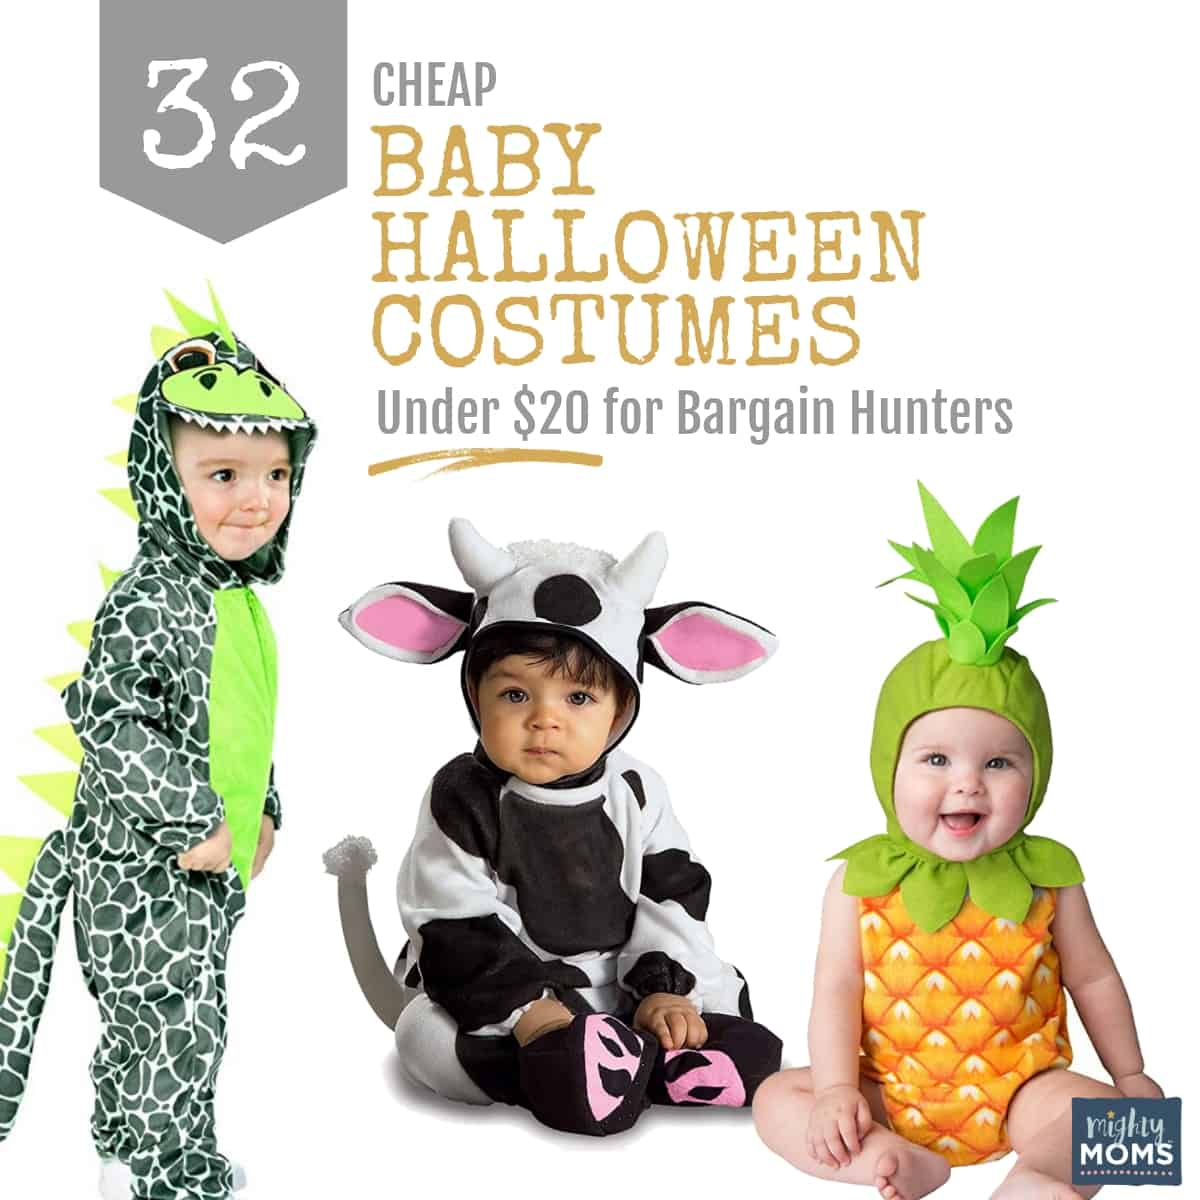 These Awesome Baby Halloween Costumes are Under $20 - MightyMoms.club